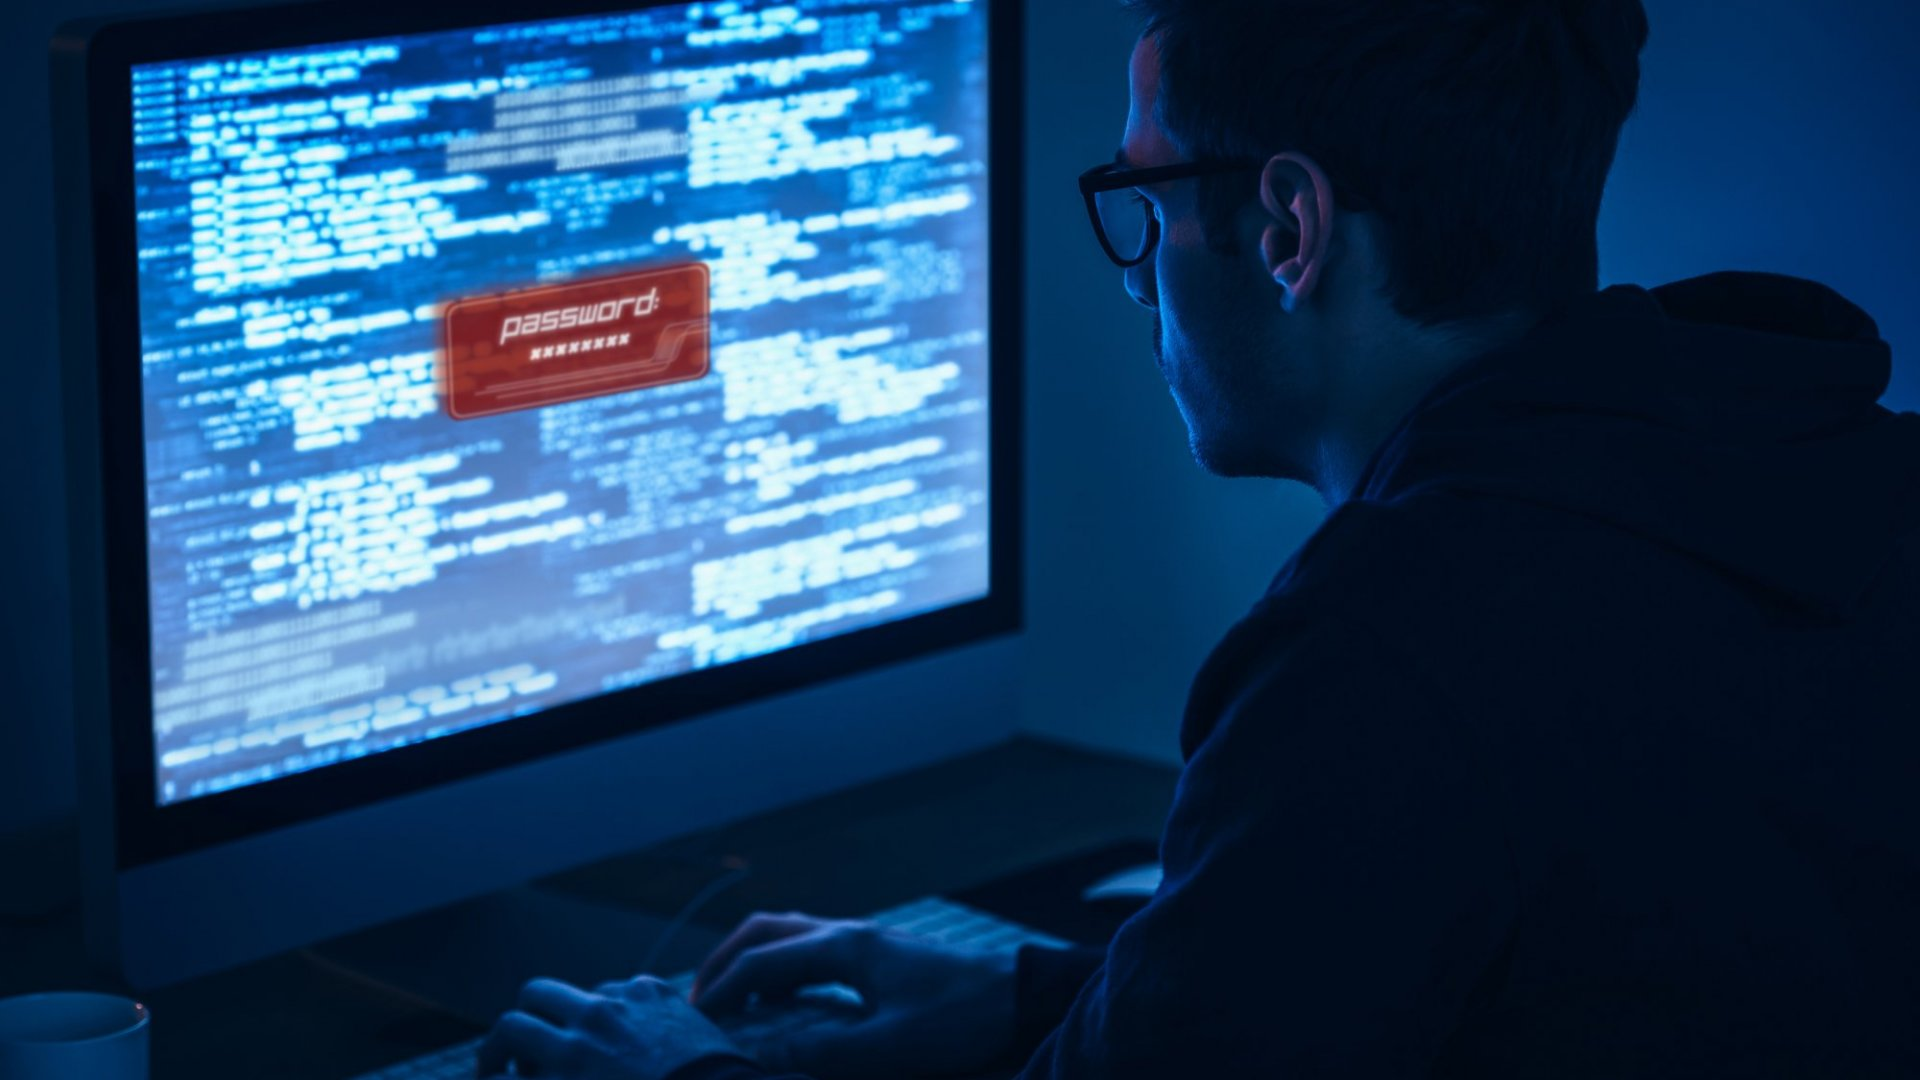 143 Million Consumers' Data Taken in Equifax Breach Through a Web App